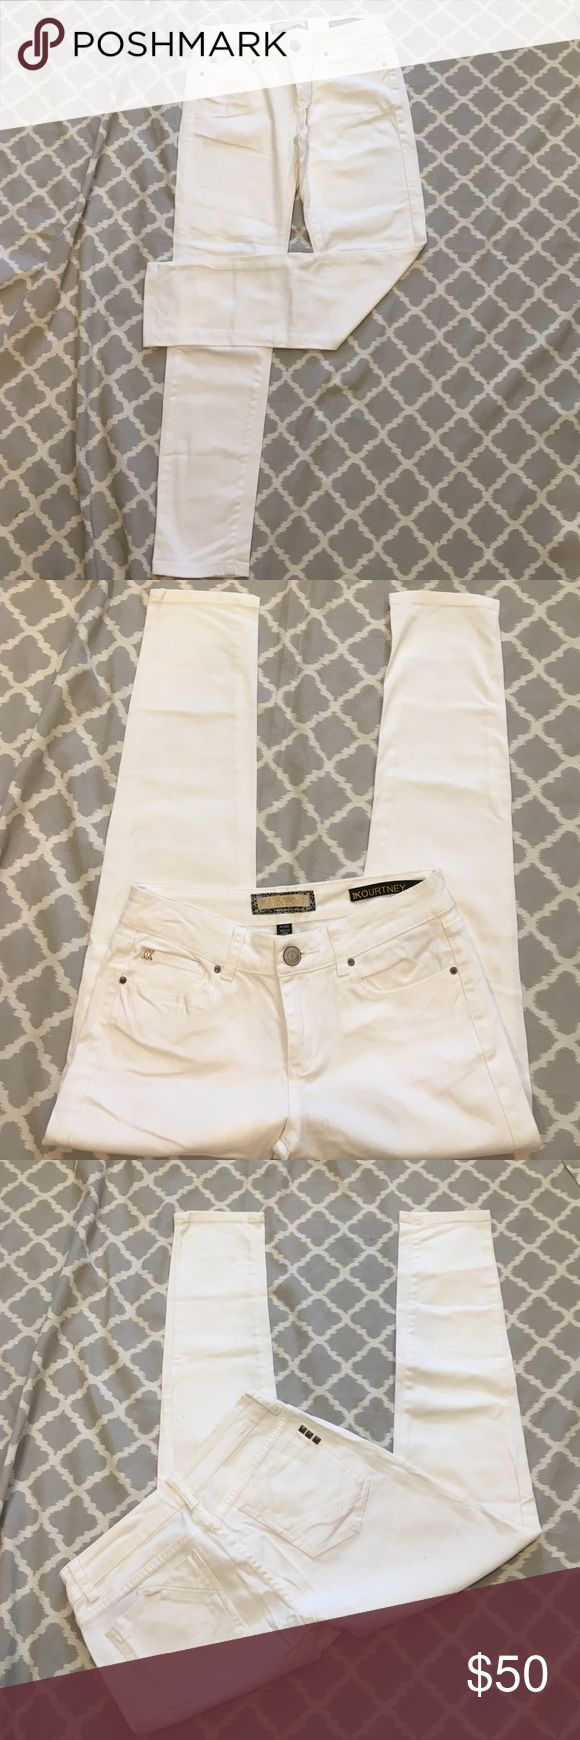 Kardashian Kollection Kourtney White Skinny Jeans Kardashian Kollection 'The Kourtney' White Skinny Jeans. Worn a few times and well cared for - no rips, stains or tears. Kardashian Kollection Jeans Skinny